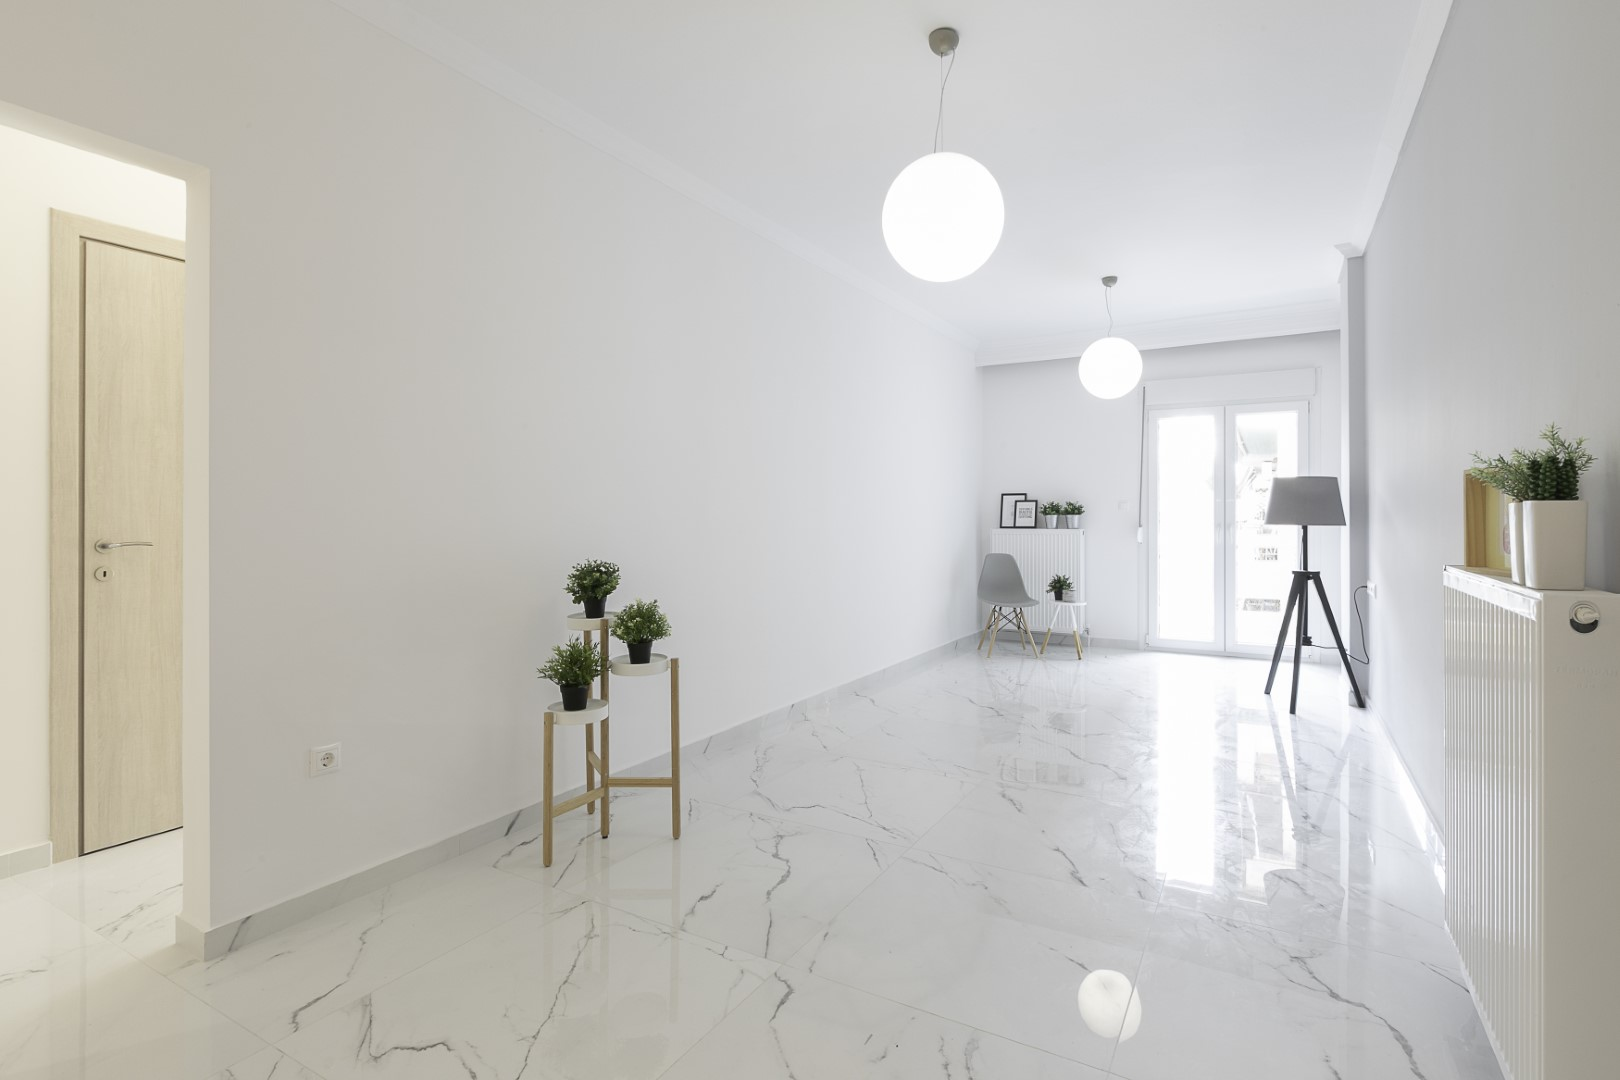 Apartment renovation | N.Paralia | 96 sq.m. | 4th floor